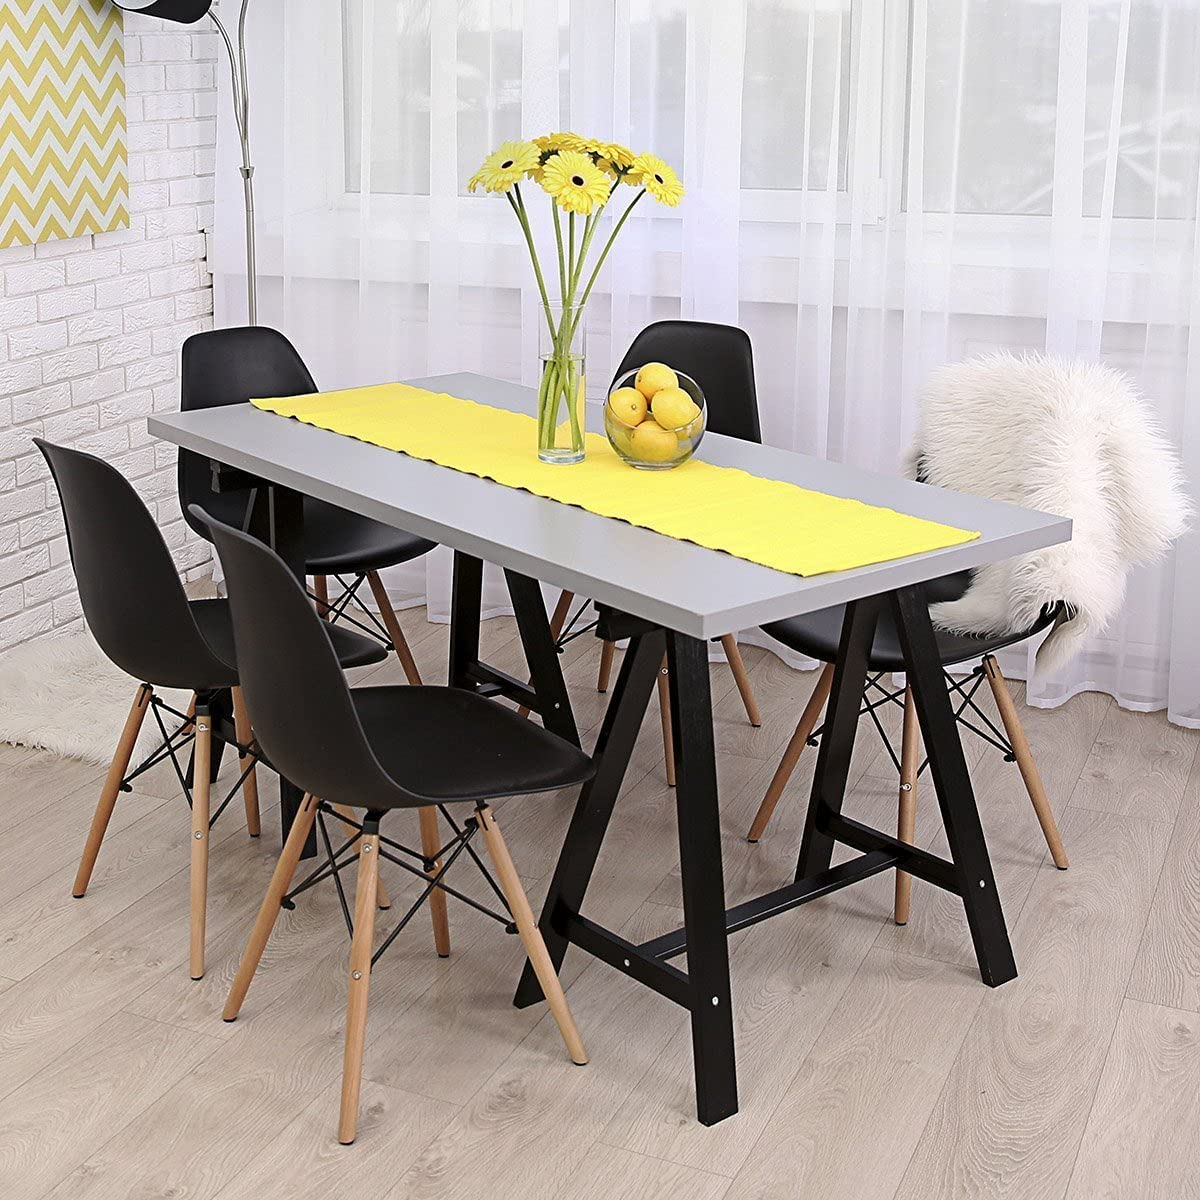 Buy Set of 9 Modern Style Dining Chair Mid Century White Modern ...